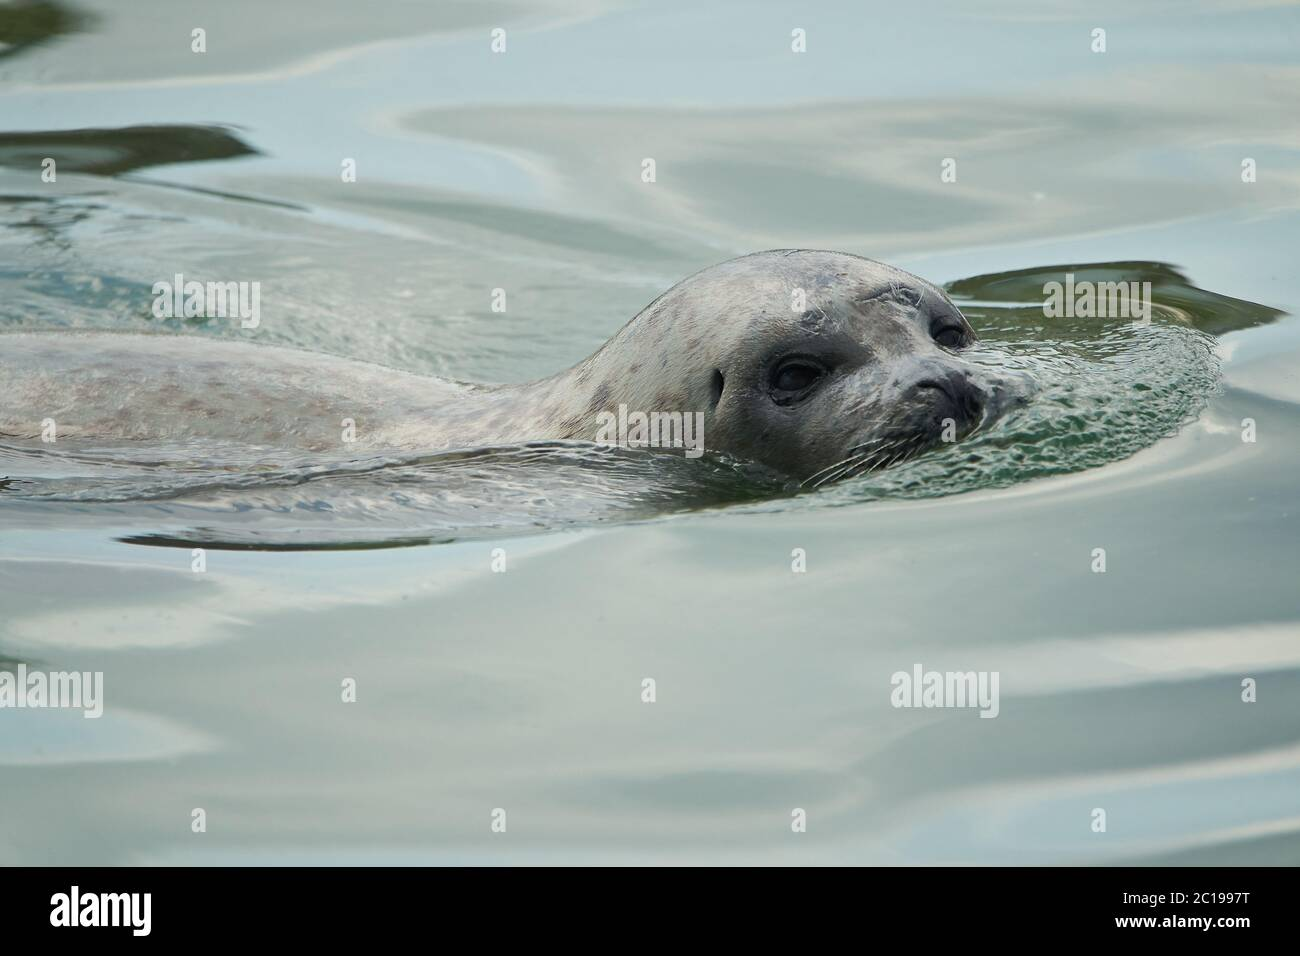 harbor or harbour seal Phoca vitulina also common seal and true seal  Stock Photo